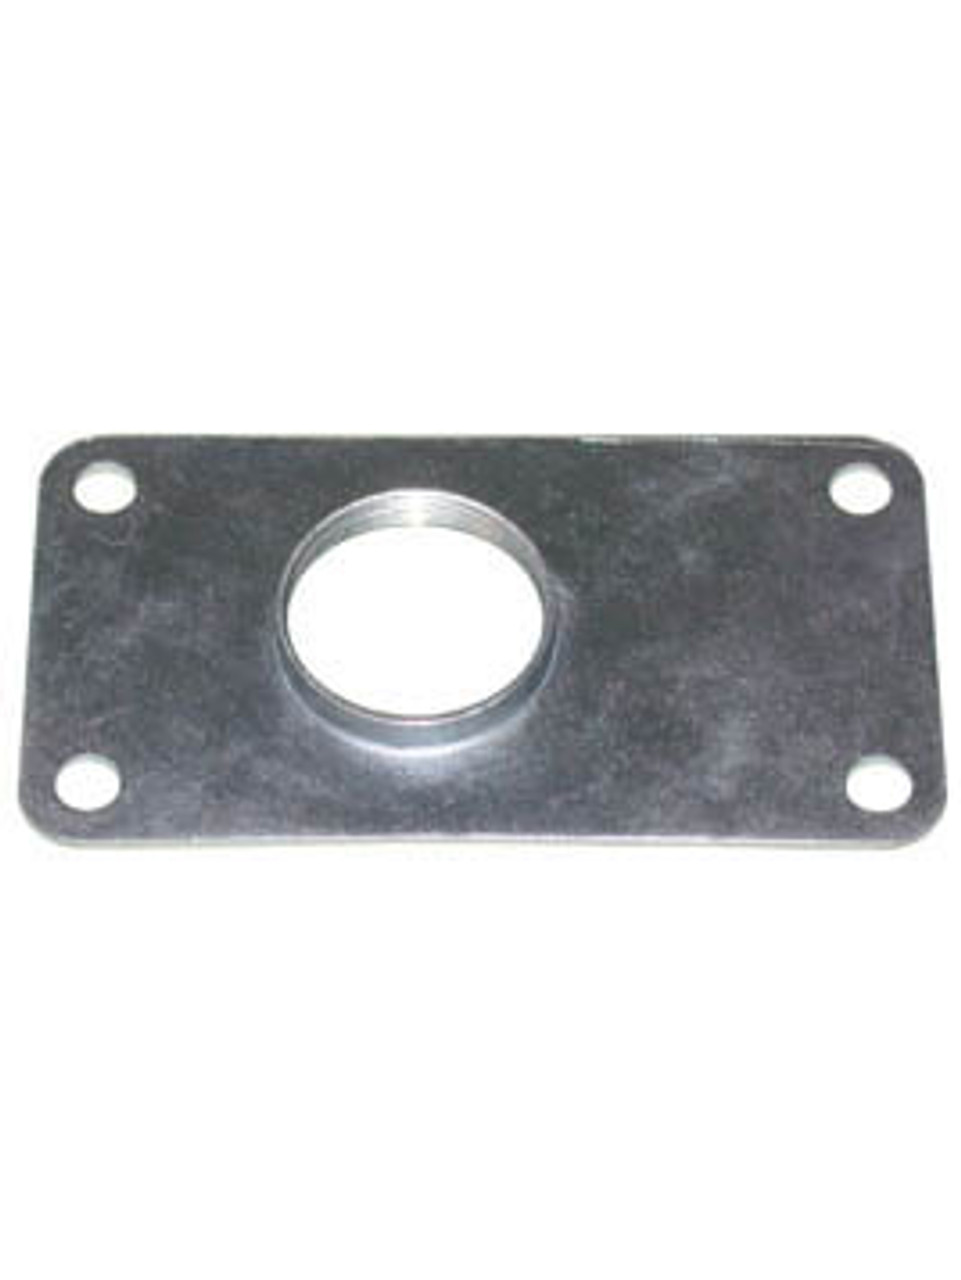 23566 --- Model 60 Actuator Master Cylinder Cover